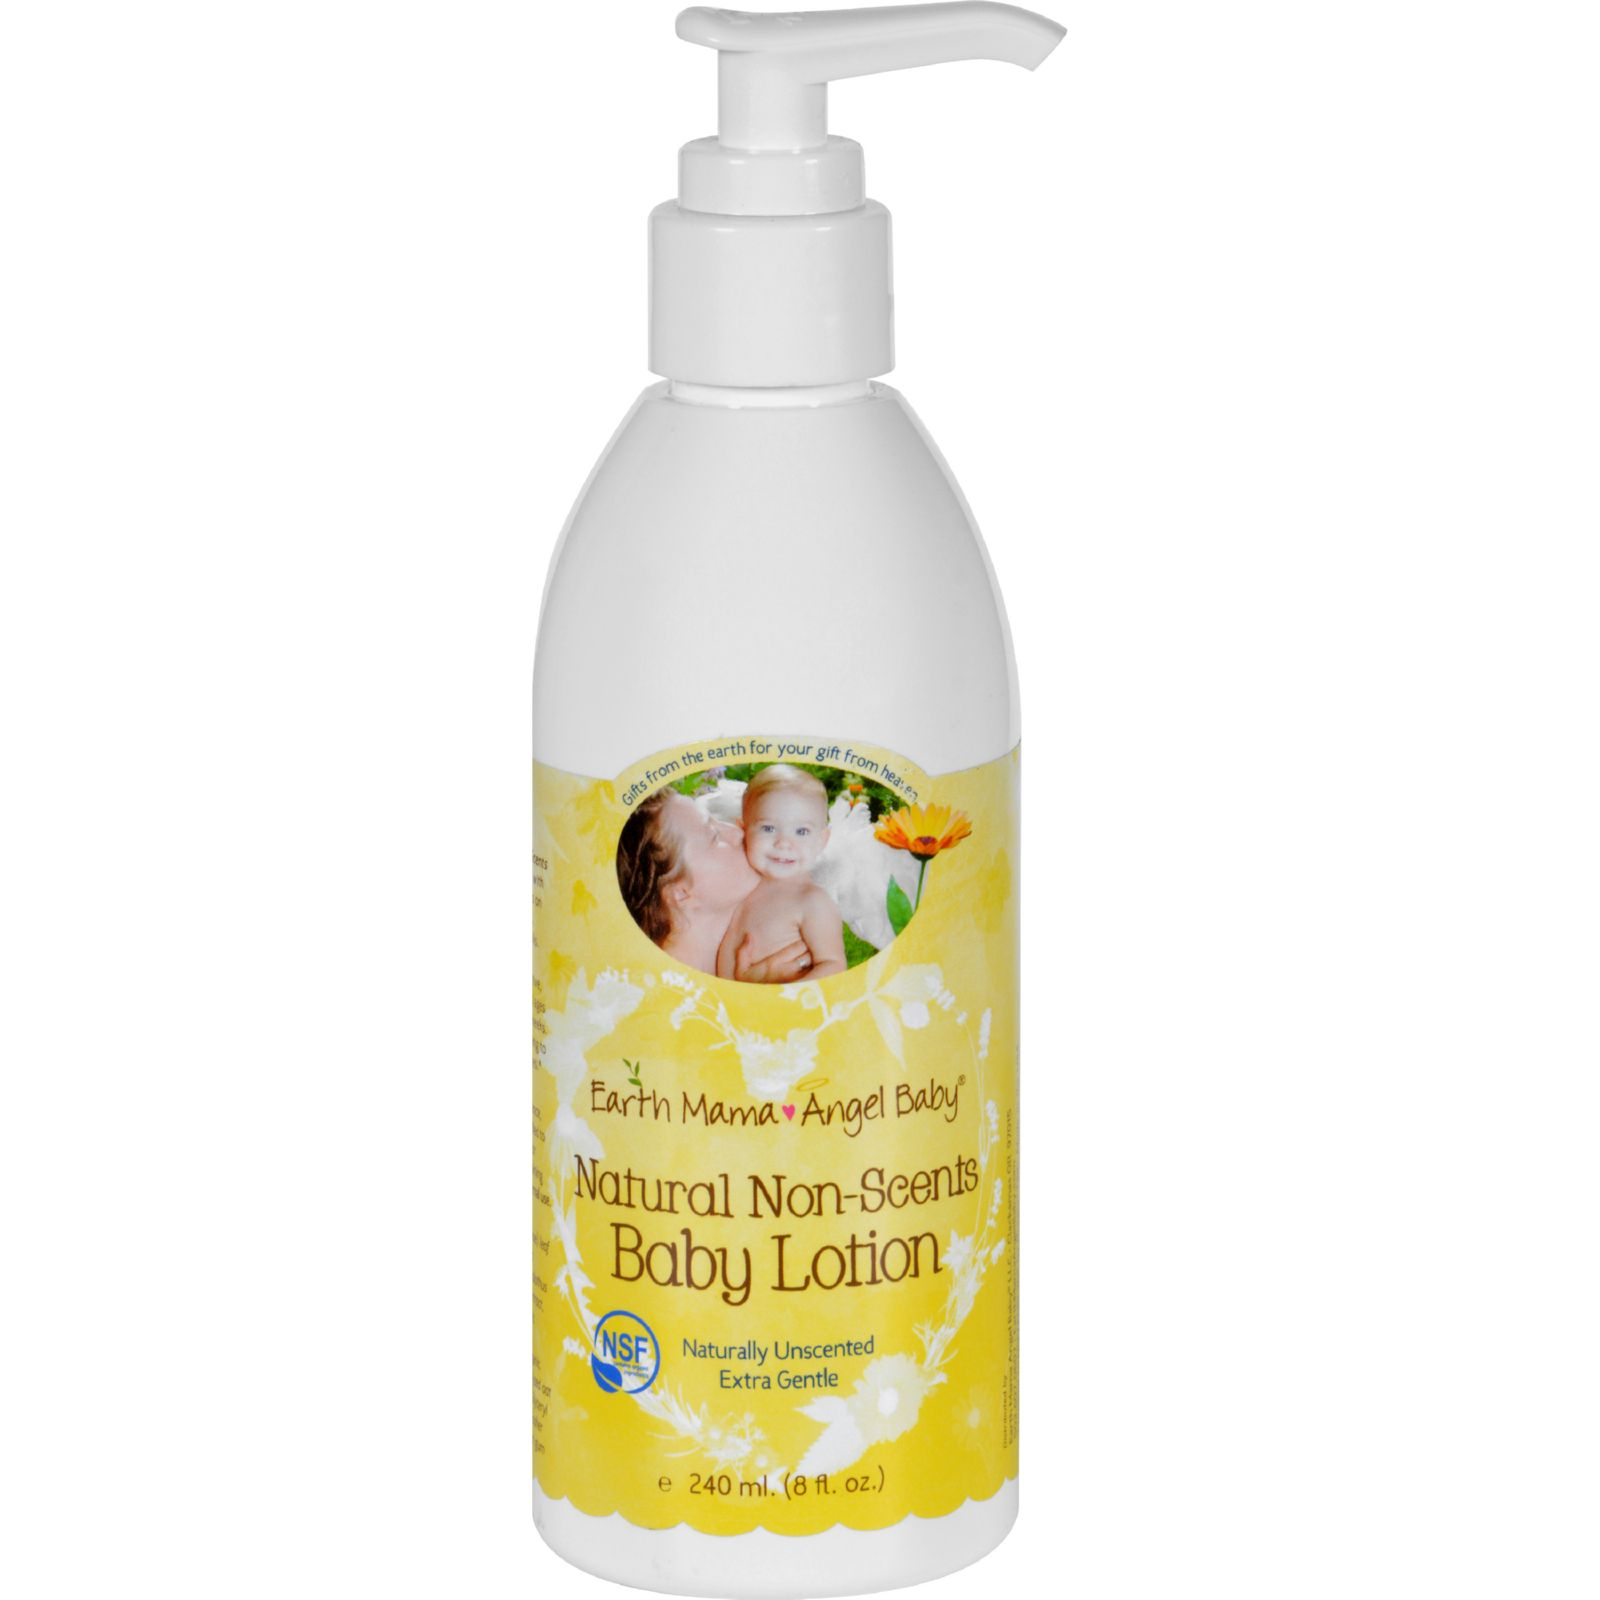 Earth Mama Natural Non-Scents Baby Lotion 8 oz Lotion